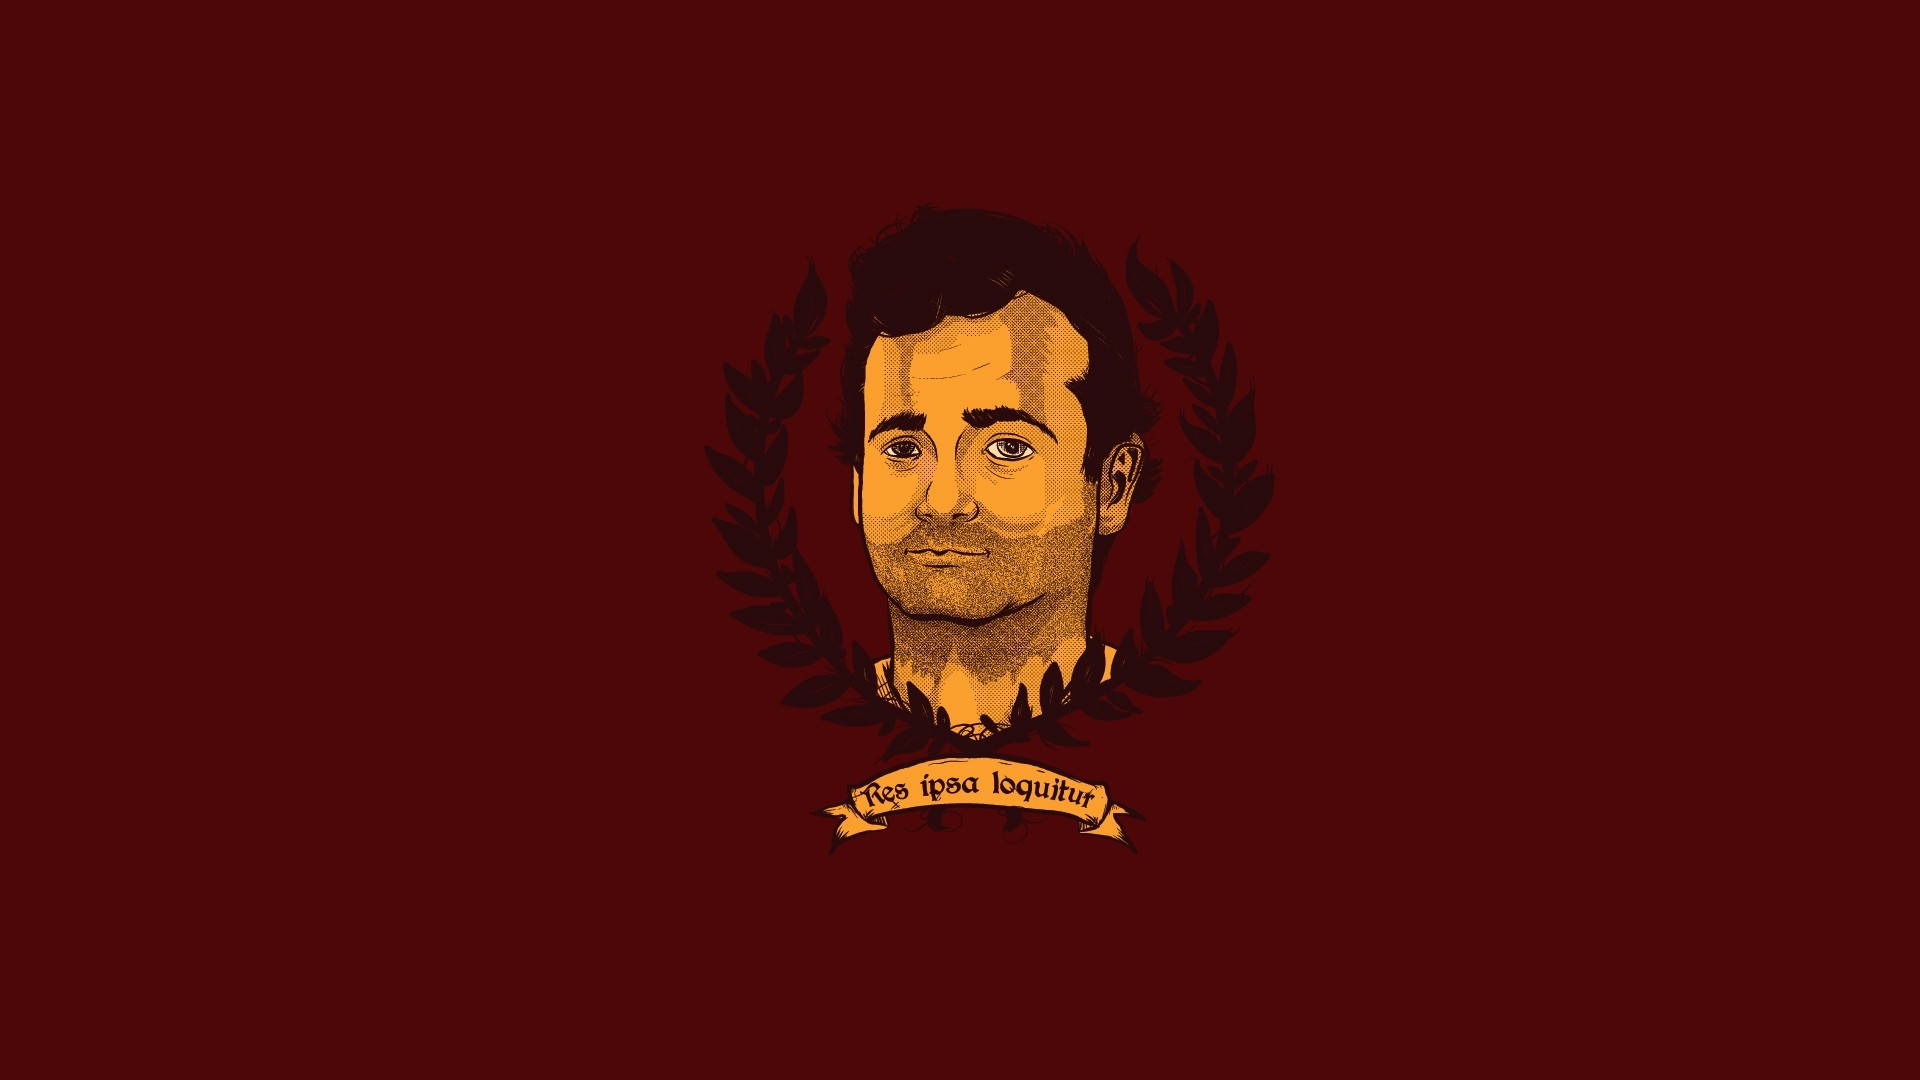 bill murray hd wallpaper - photo #5